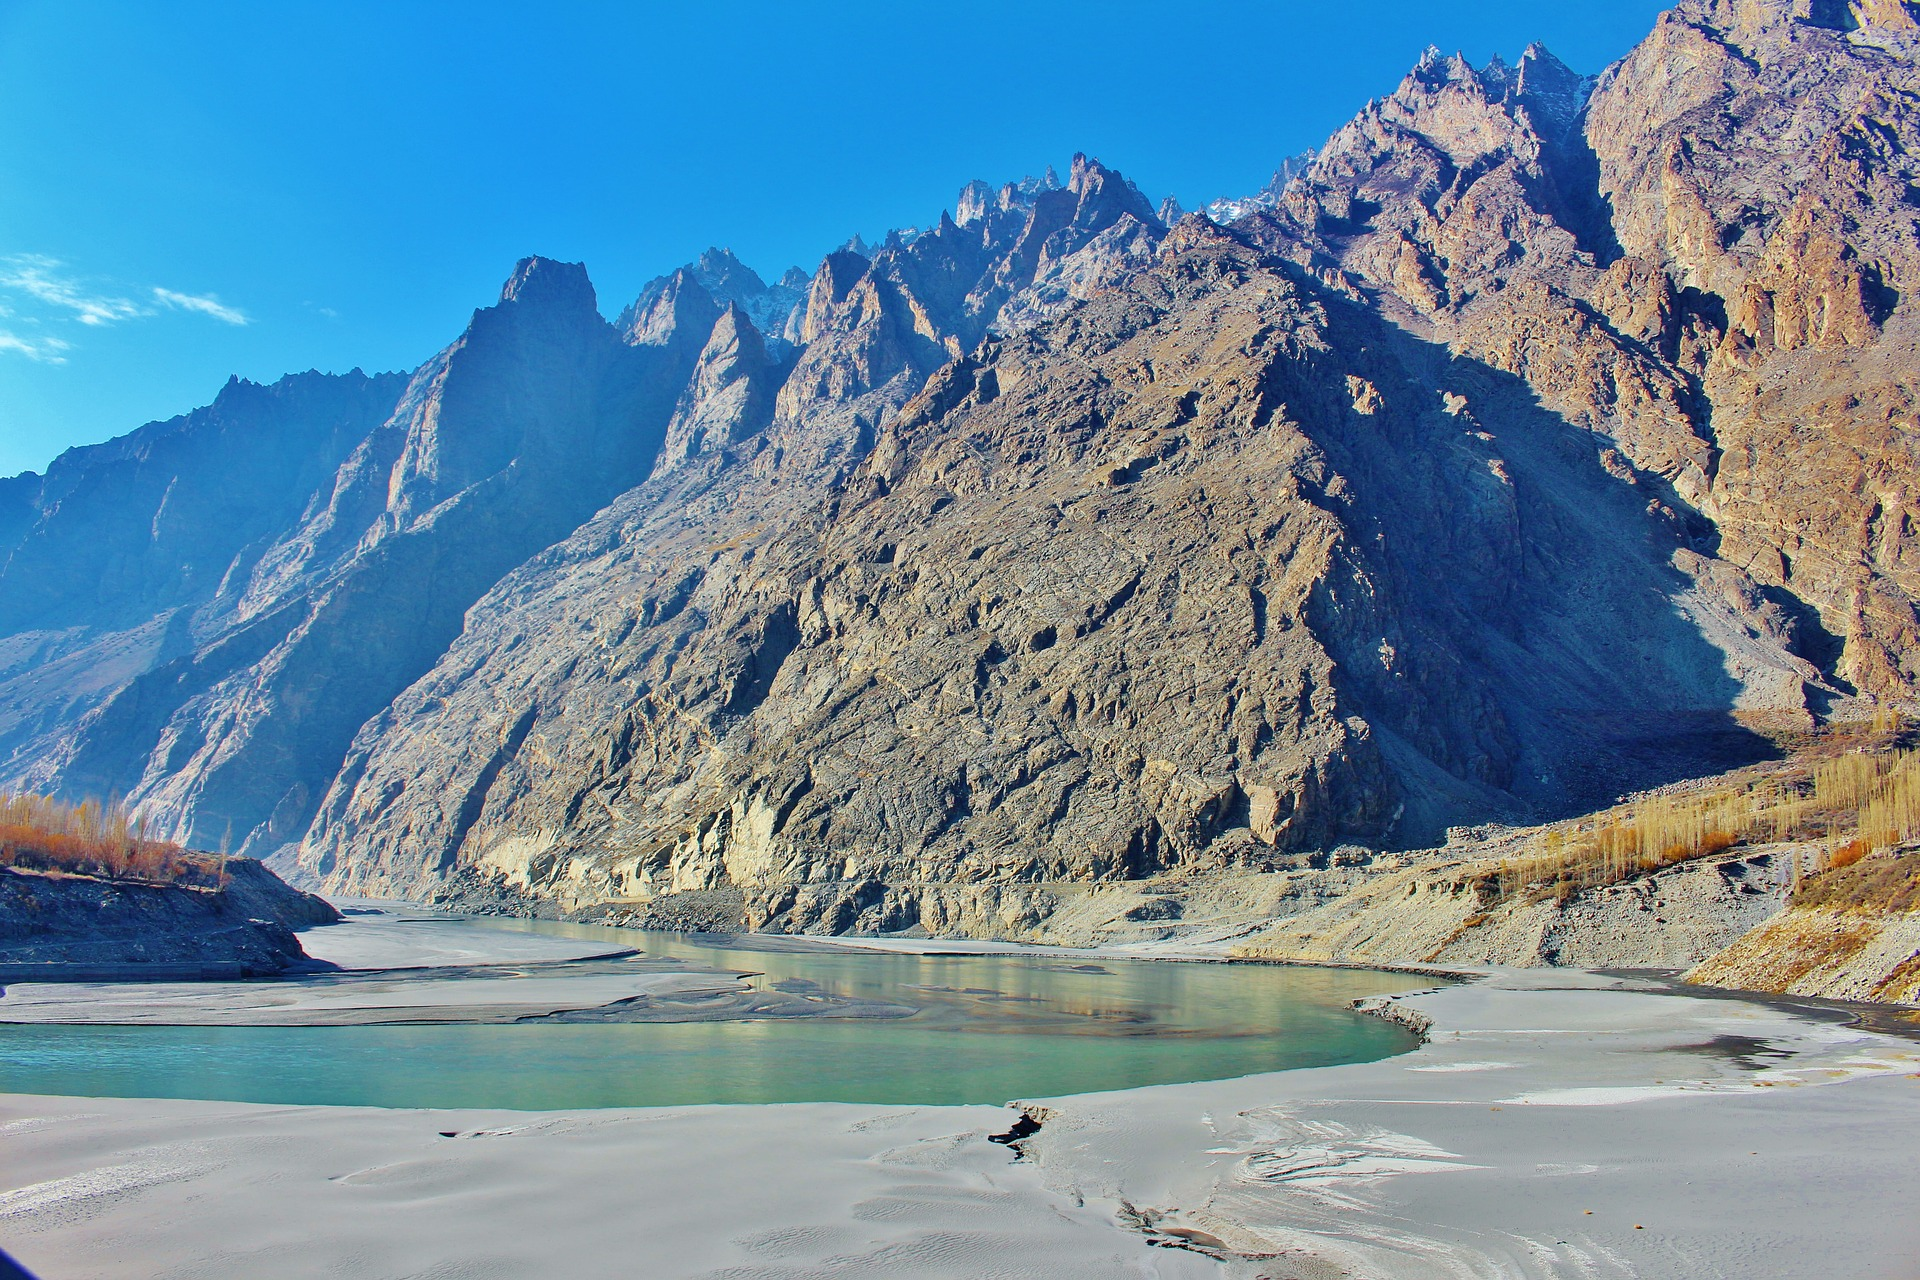 Things to explore in Pakistan - Hunza Valley